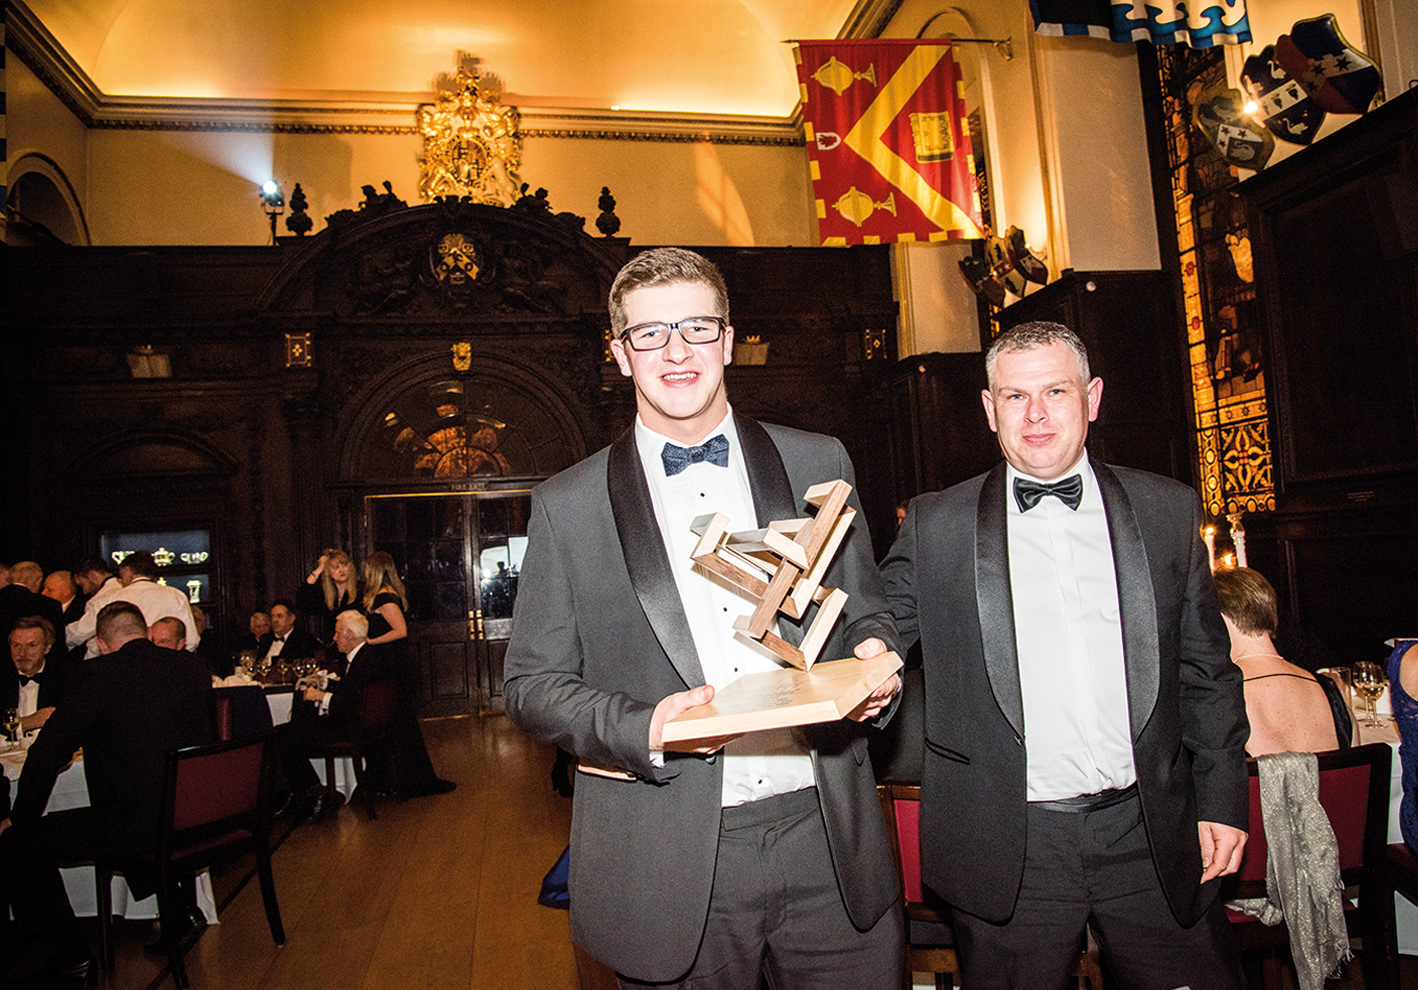 Enter the BWF Apprentice of the Year Award